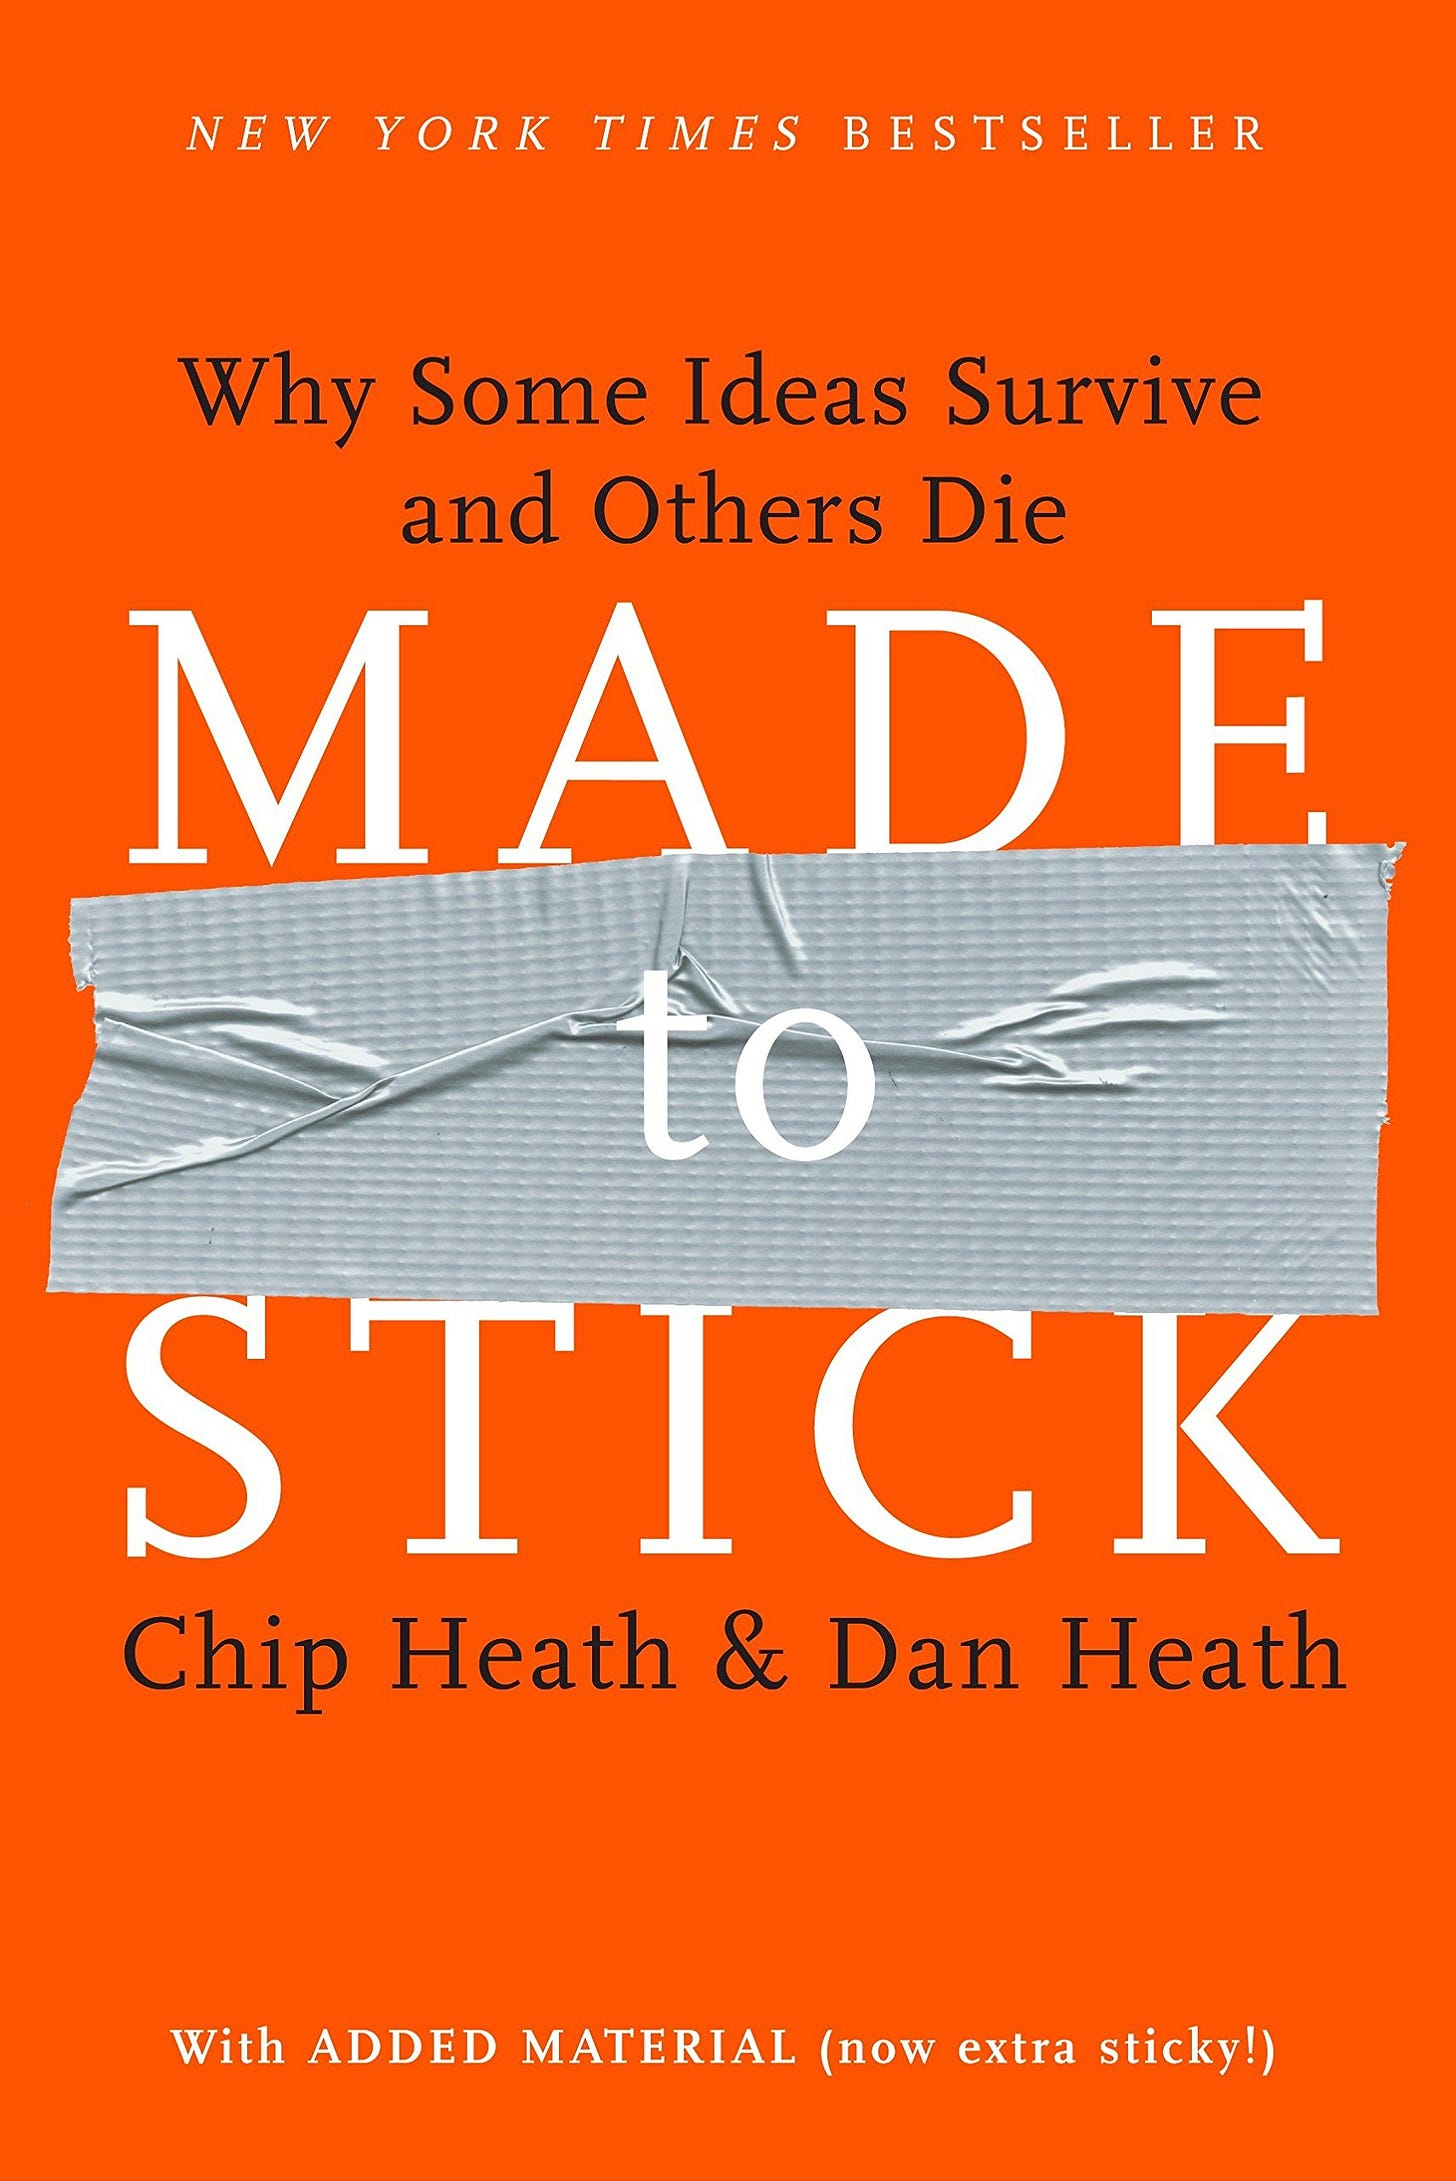 """This image shows a book cover, which reads, """"New York Times Bestseller. Why some ideas survive and others die. MADE to STICK. Chip Heath & Dan Heath. With added material (now extra sticky)."""""""